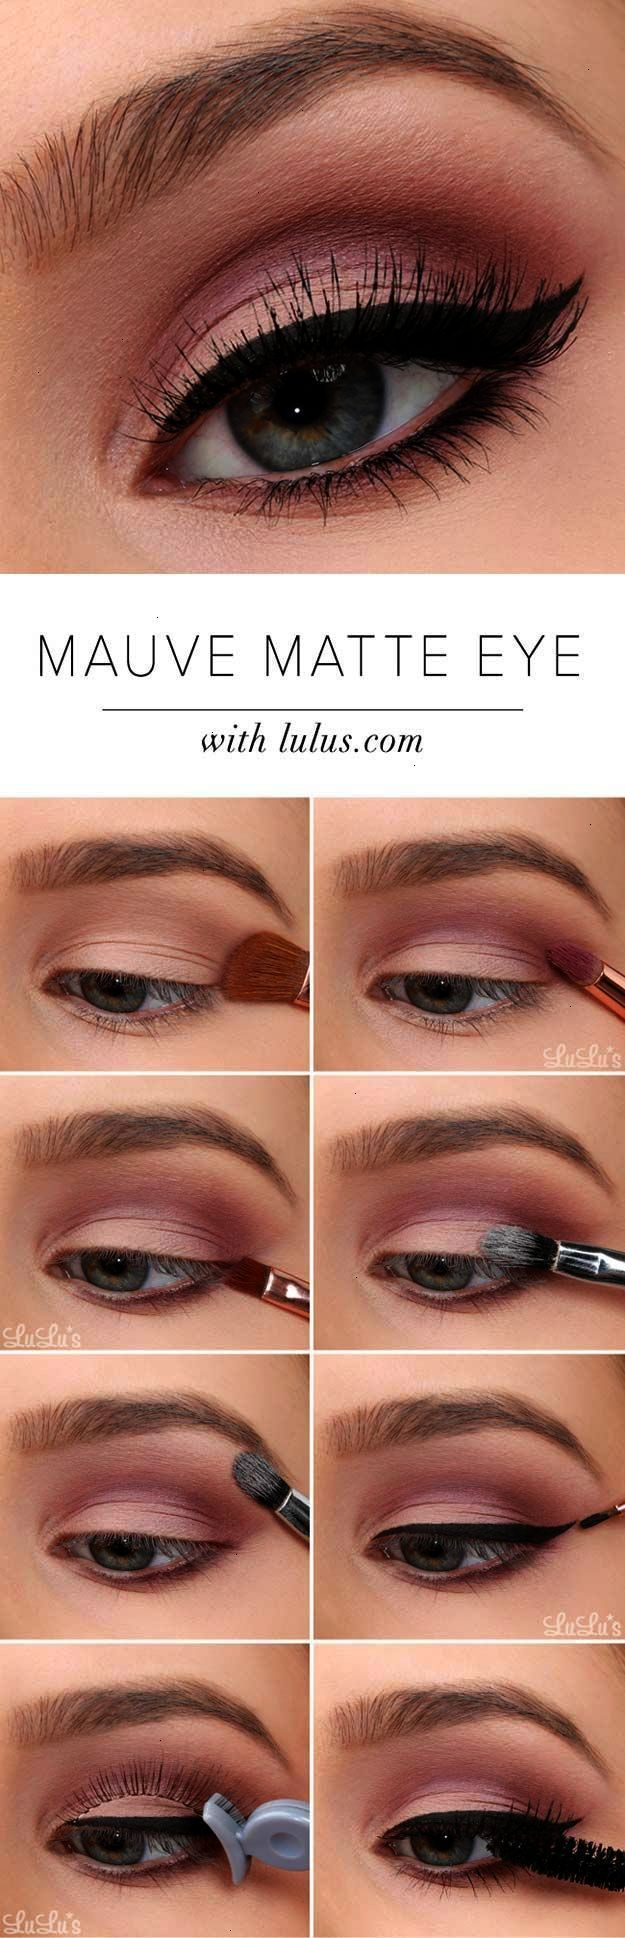 Sexy Eye Makeup Tutorials - Mauve Matte Eye Tutorial - Easy Guides on How To Do ...